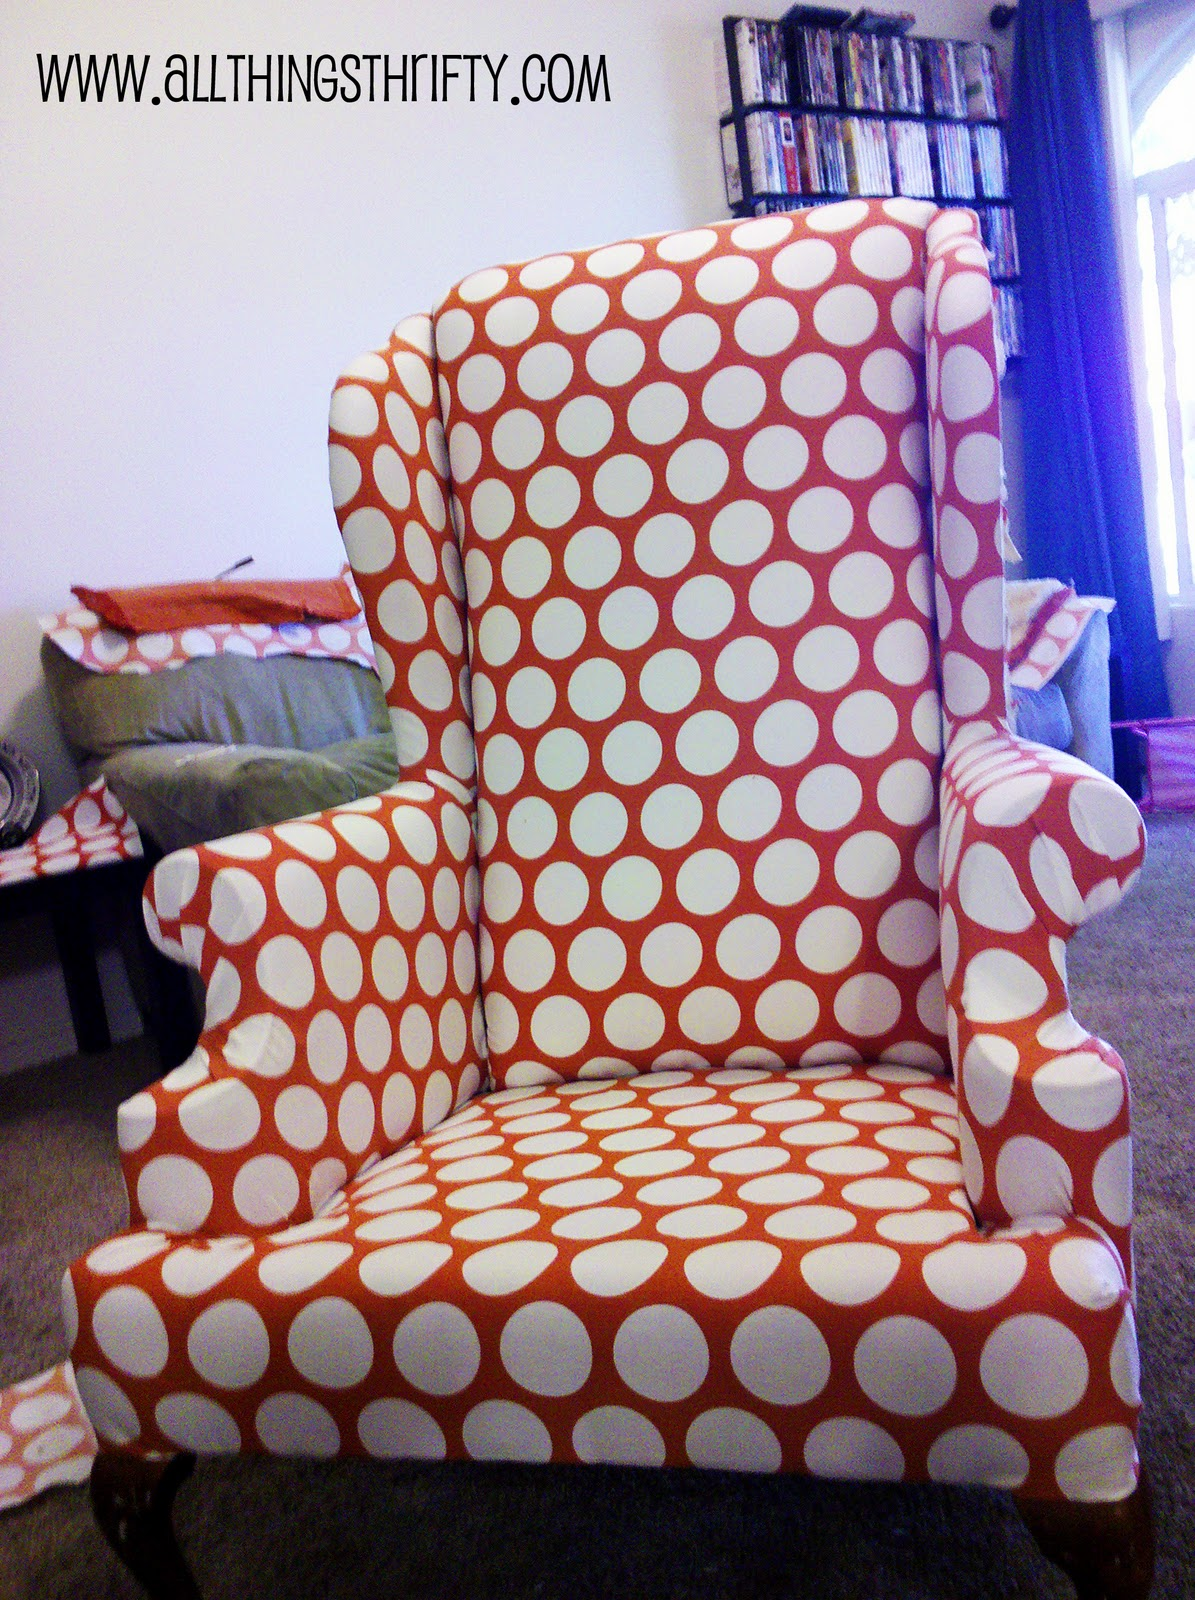 & Top 10 Upholstery Tips | All Things Thrifty